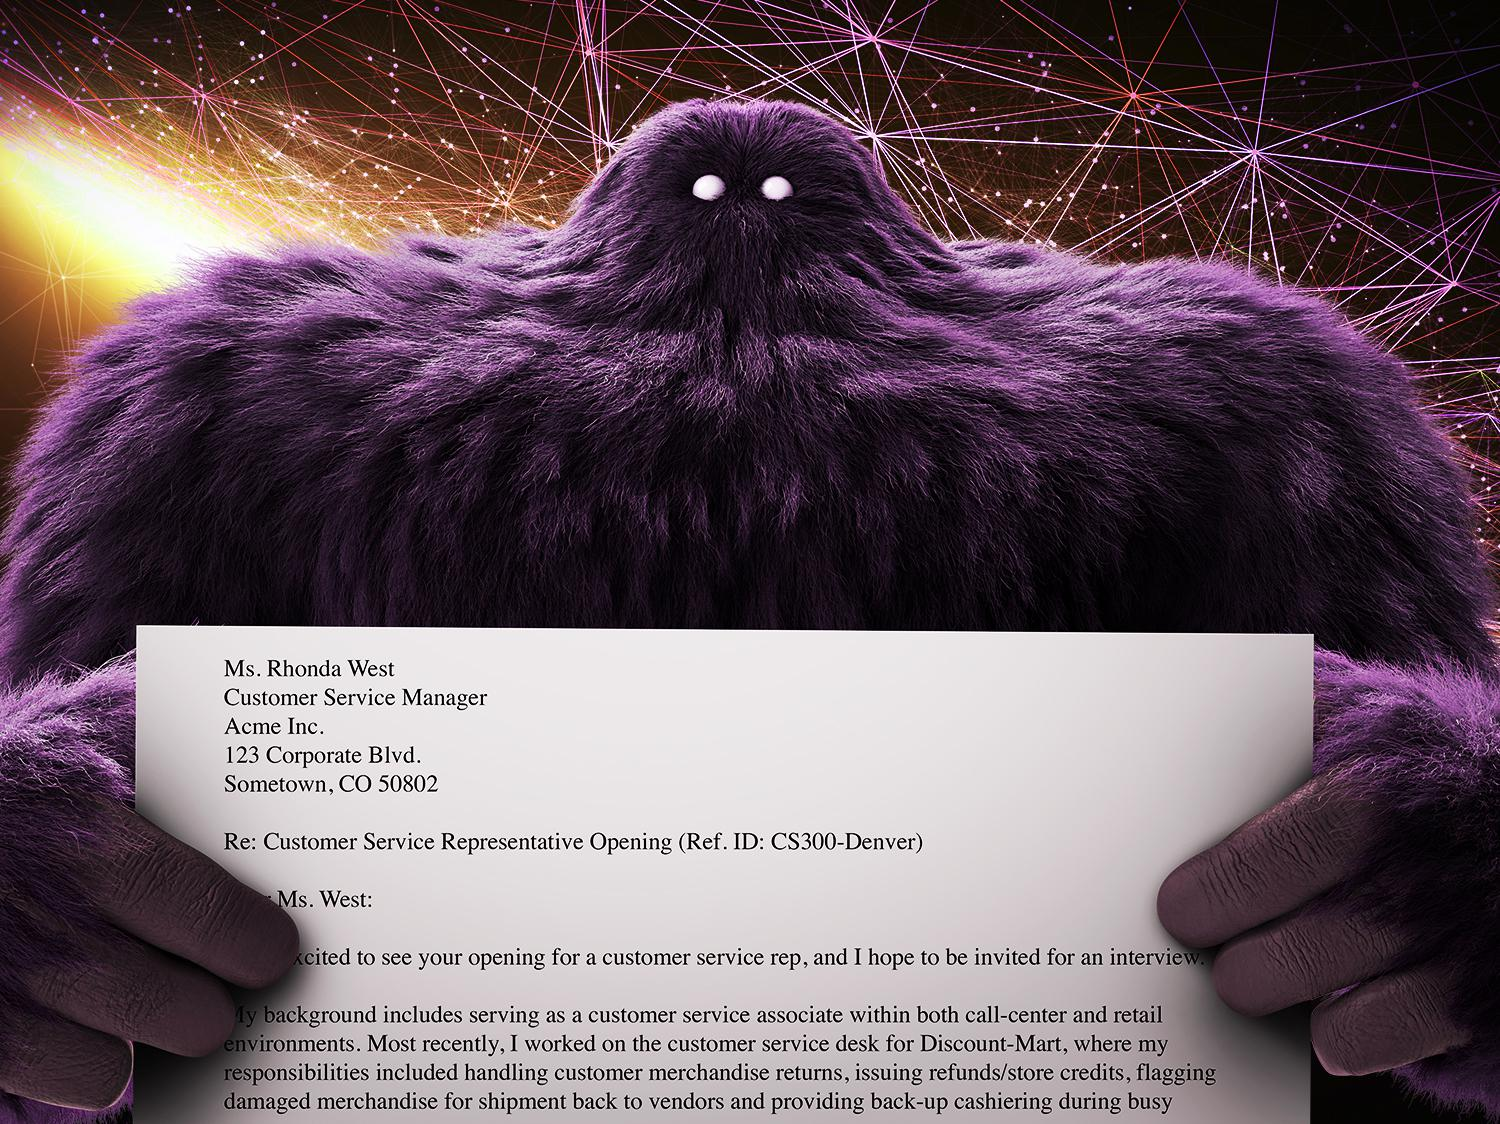 cover letter format sample monster com